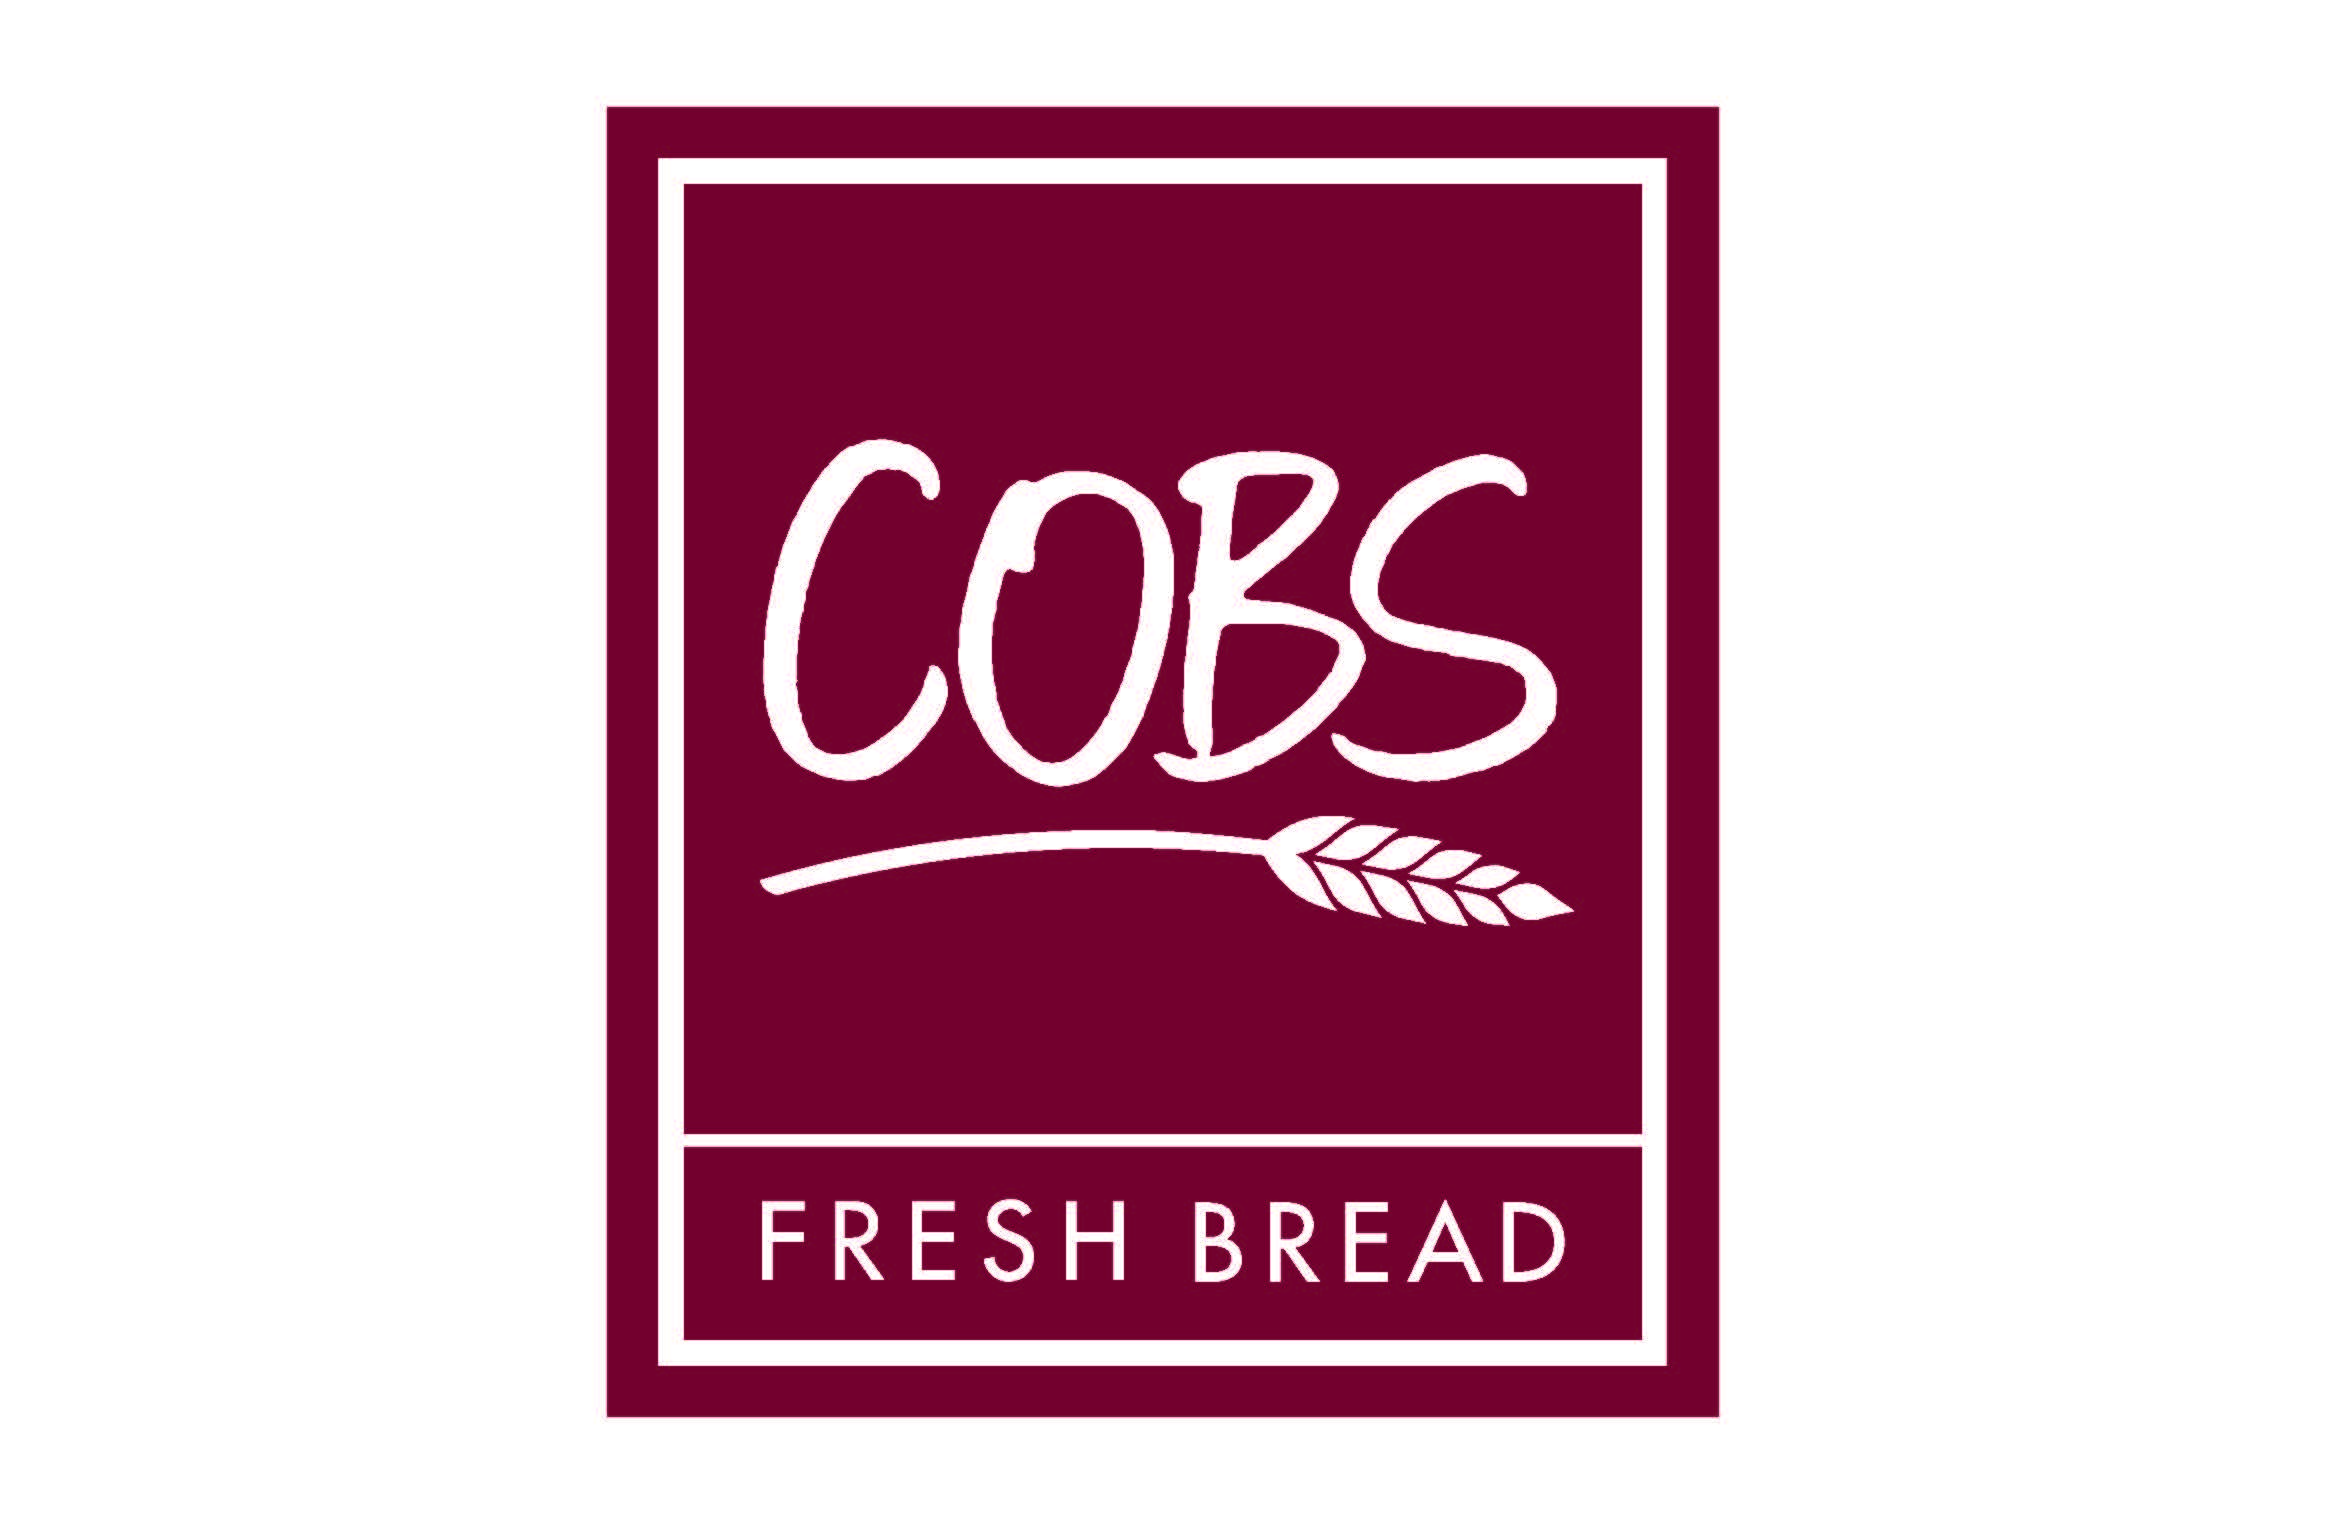 Sponsored by Cobs Fresh Bread